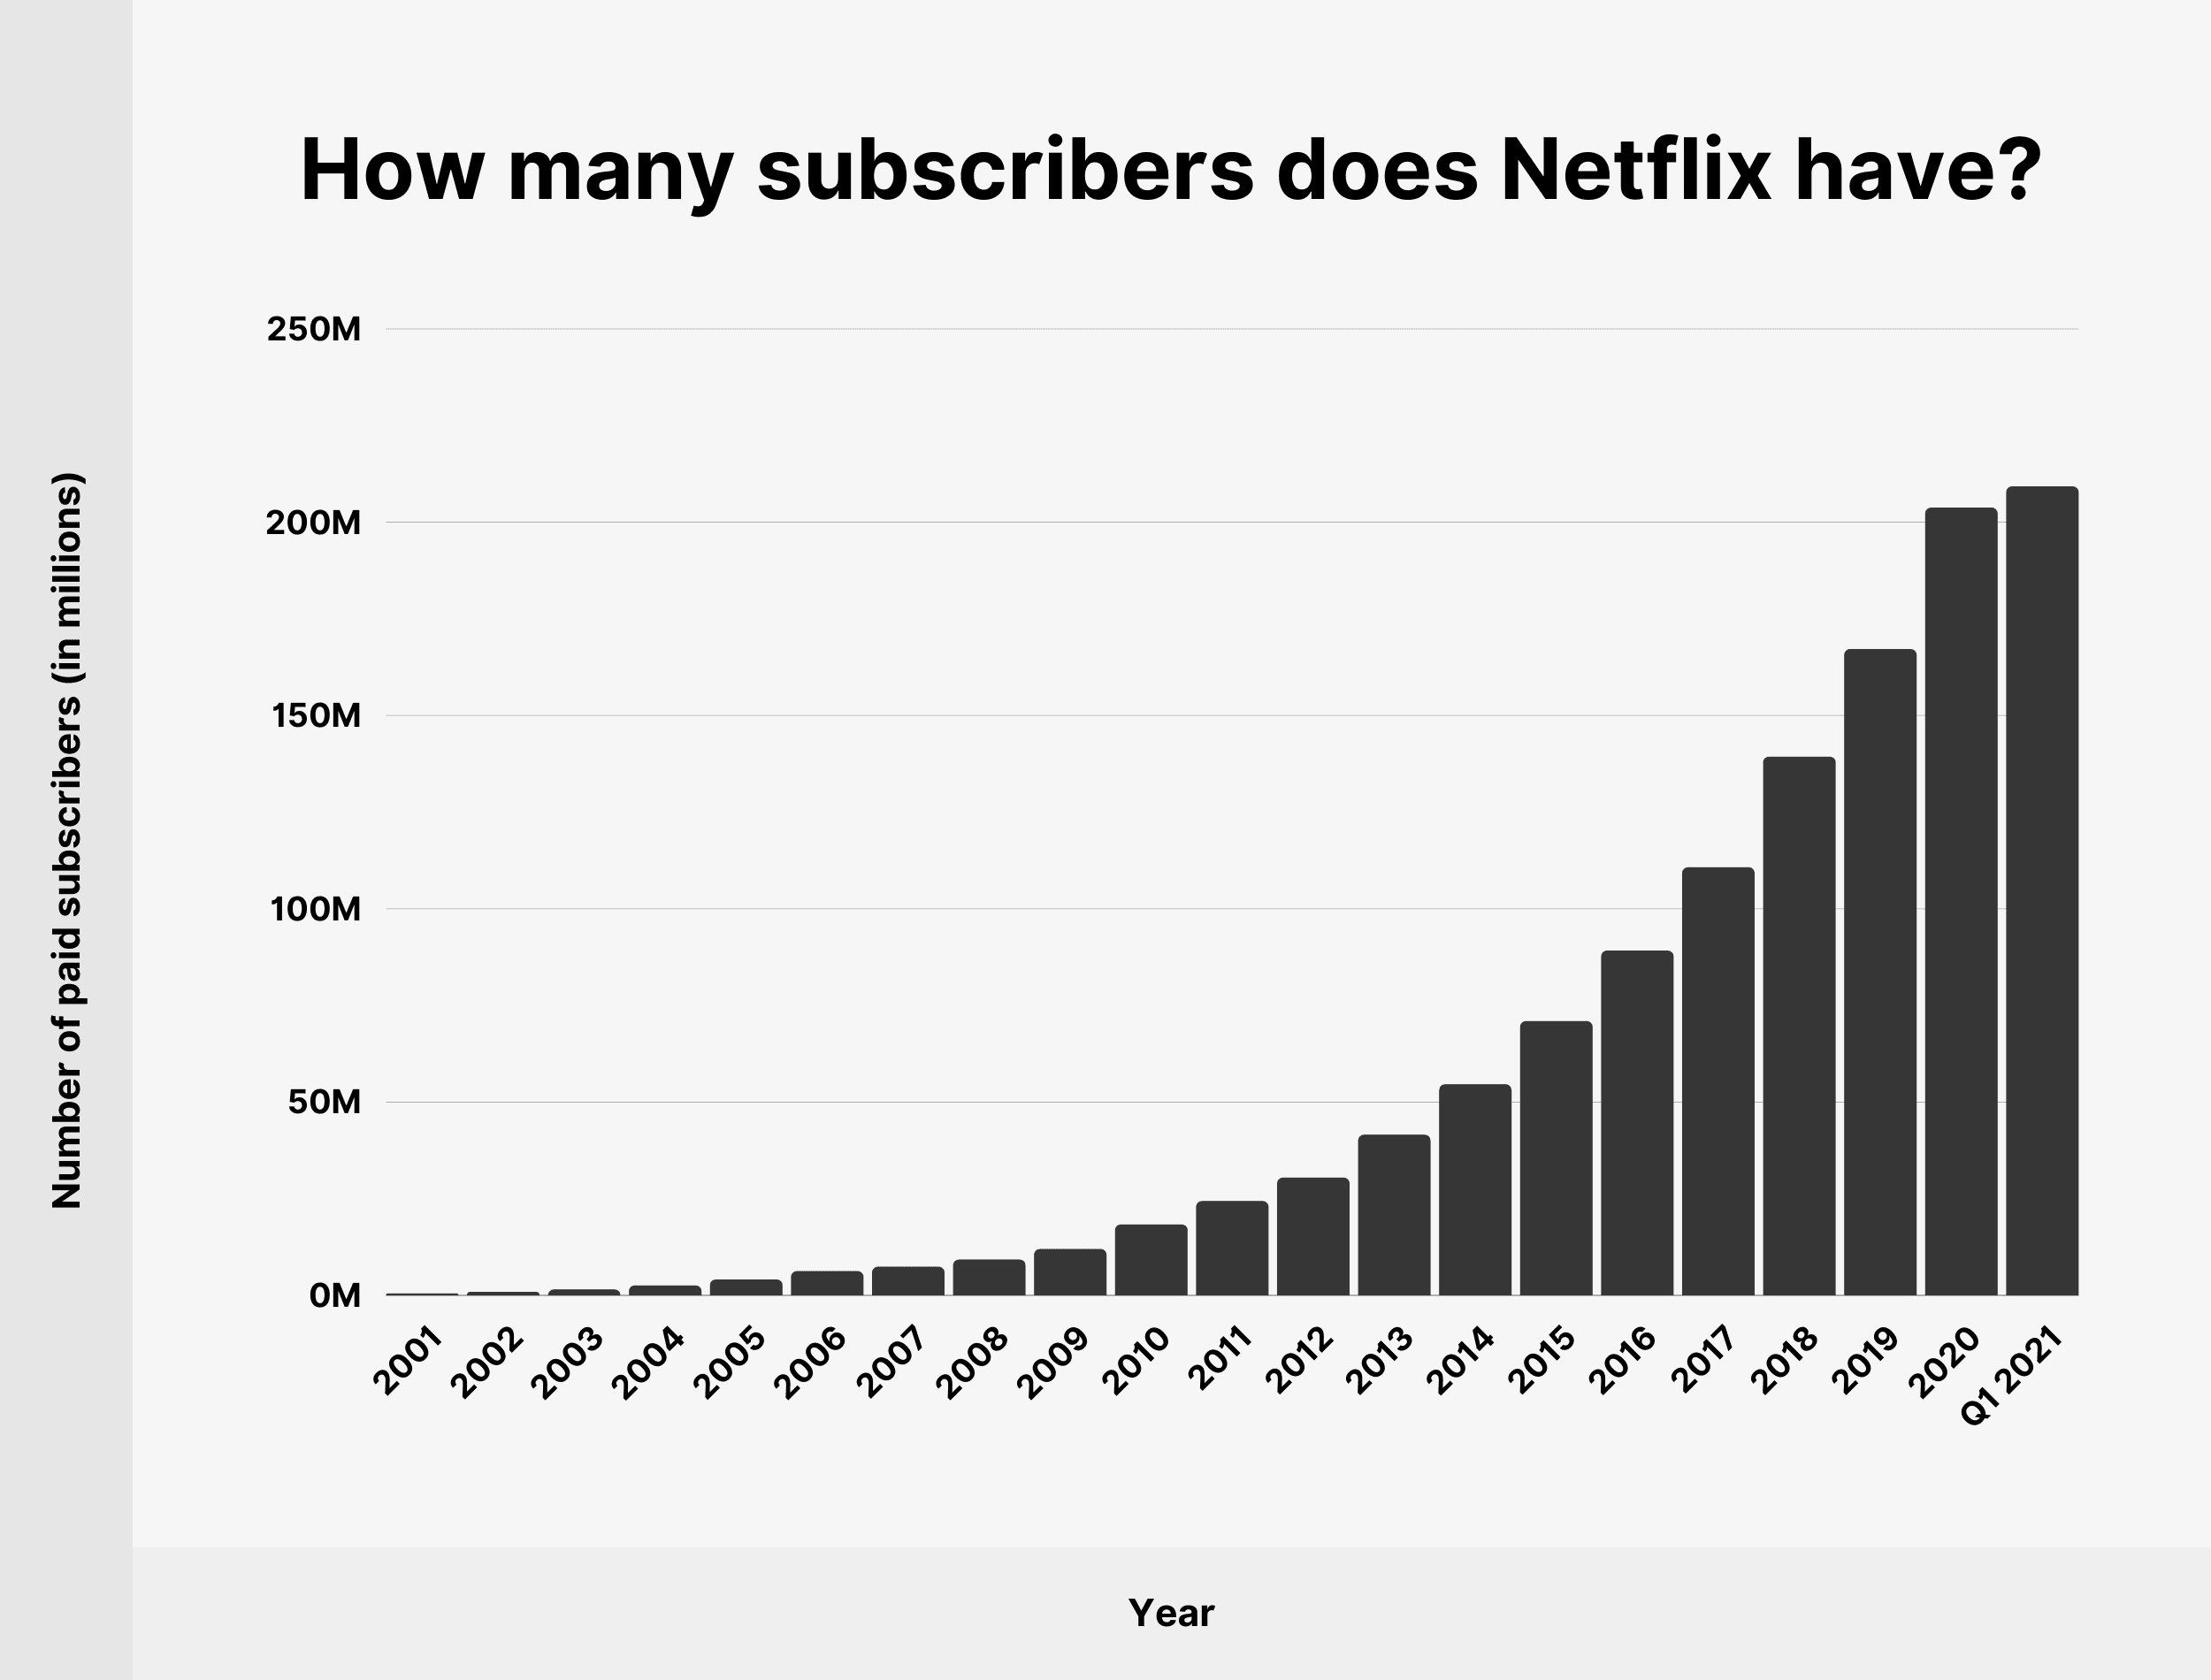 How many subscribers does Netflix have?